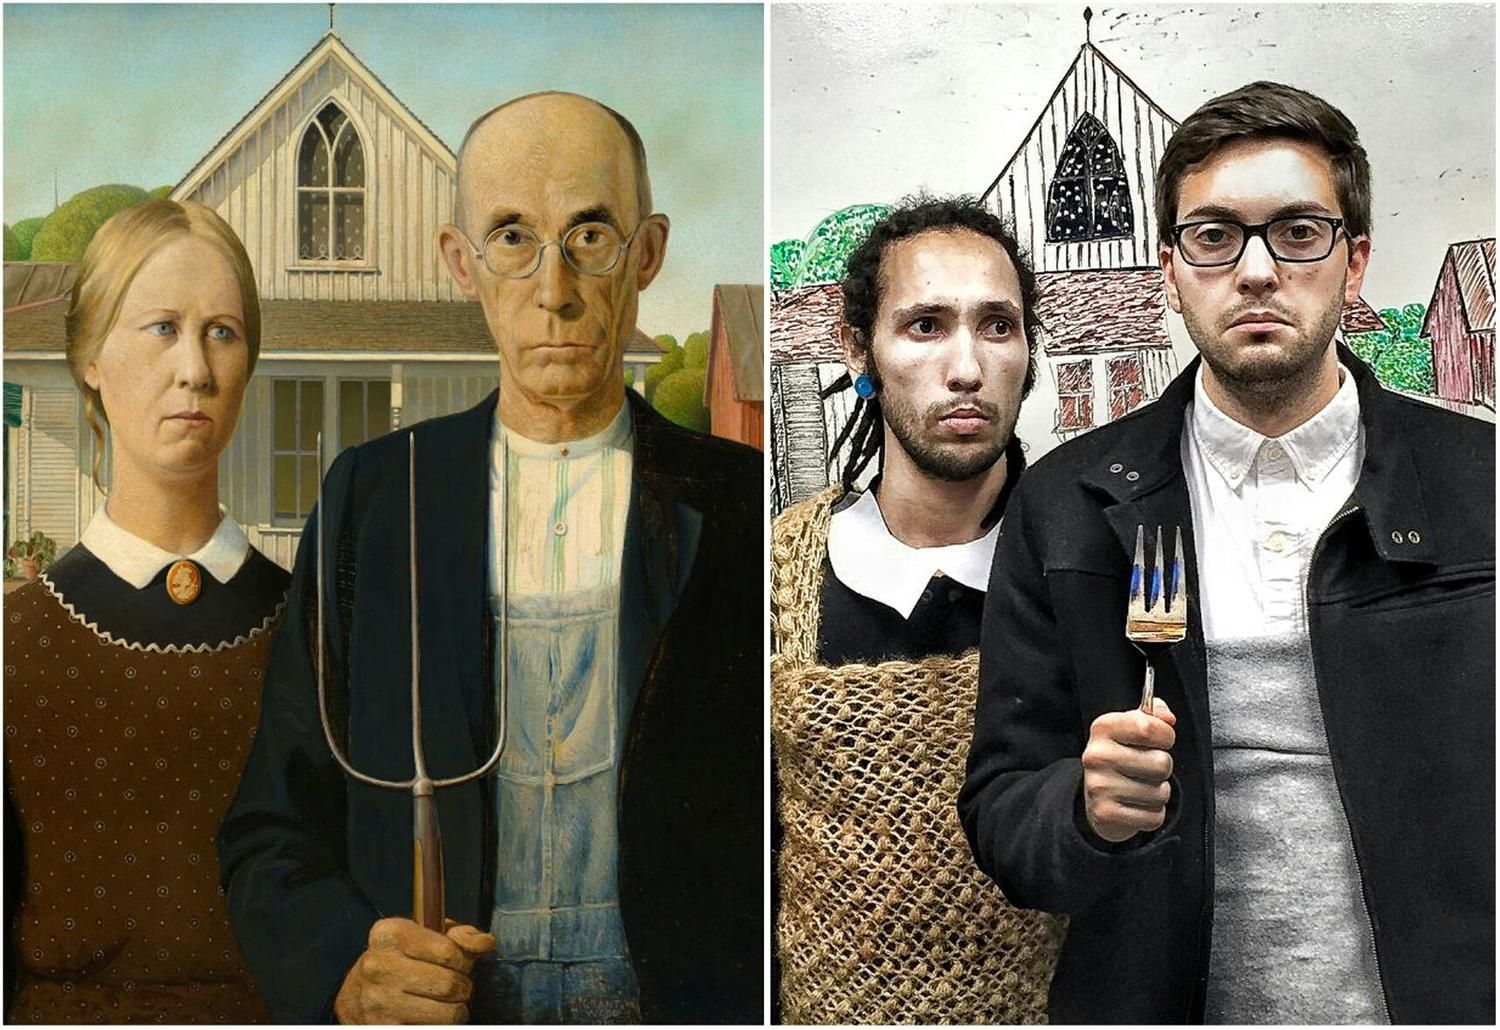 Pin by Colección Gráfica DPTO DIBUJO on Photography ideas | American  gothic, Famous artwork, Famous art